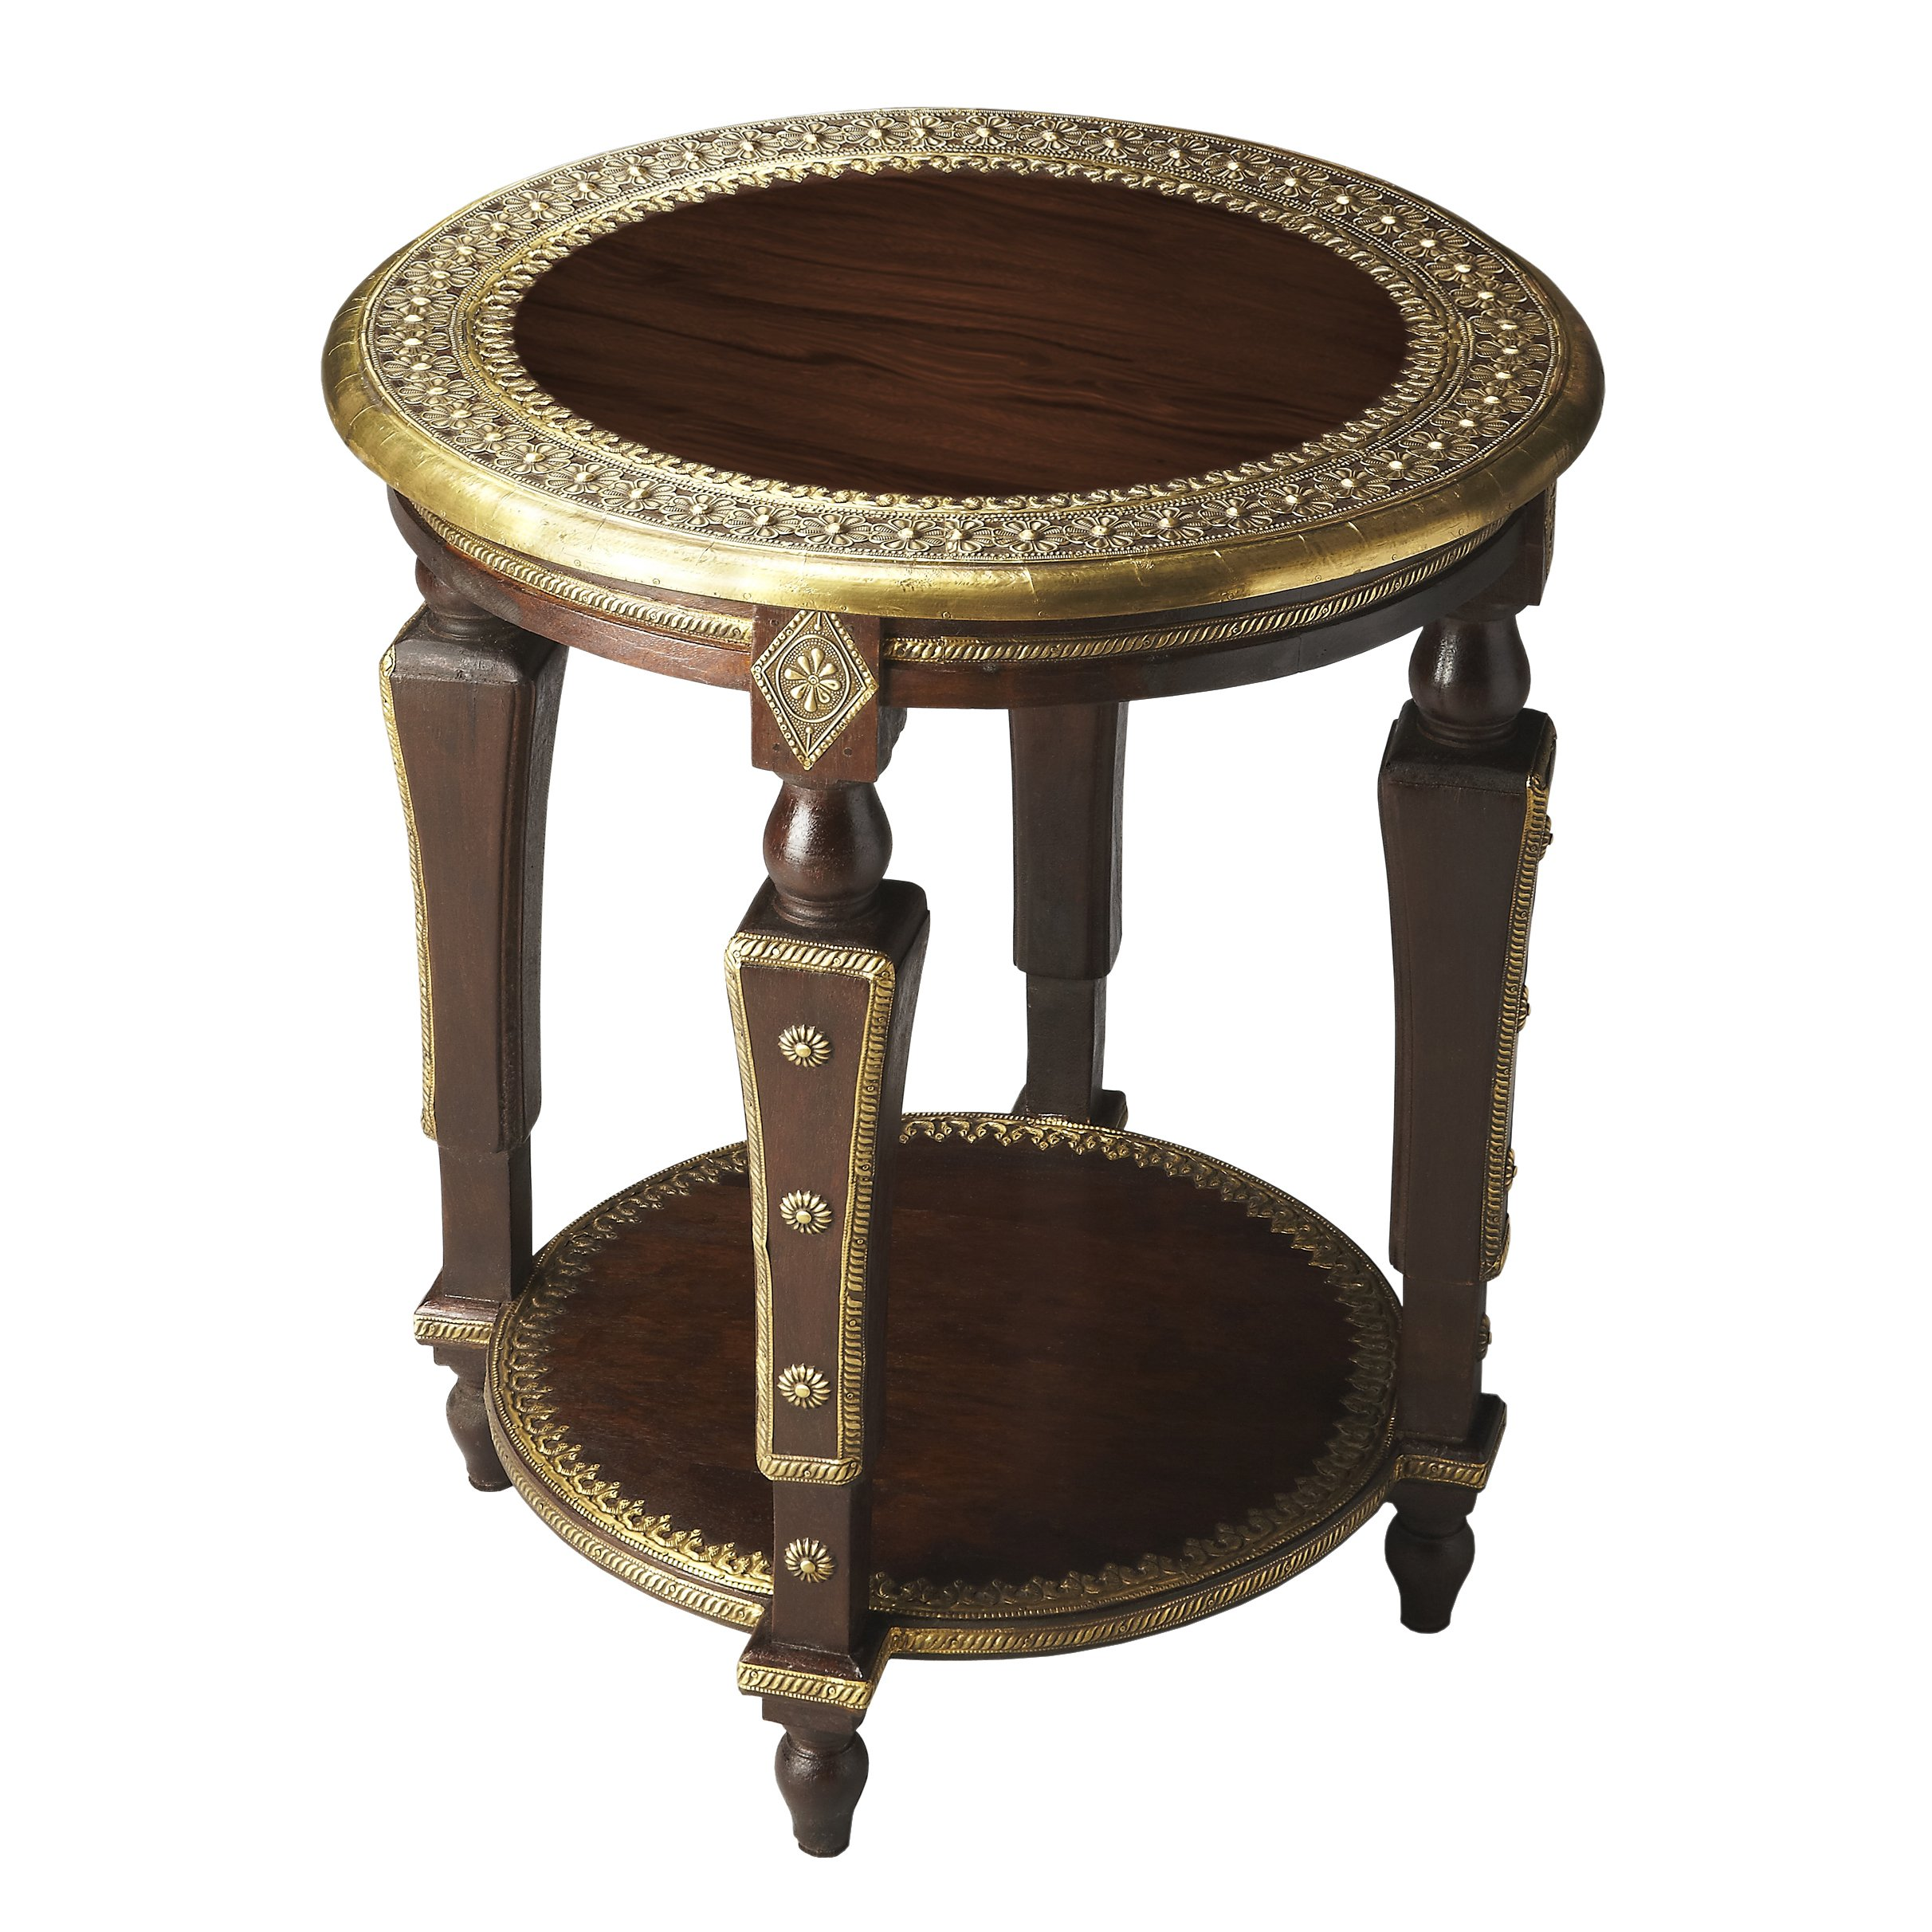 handmade regal round mango wood end table free accent shipping today storage with baskets west elm parsons coffee concrete side nested furniture wedding centerpiece ideas nic